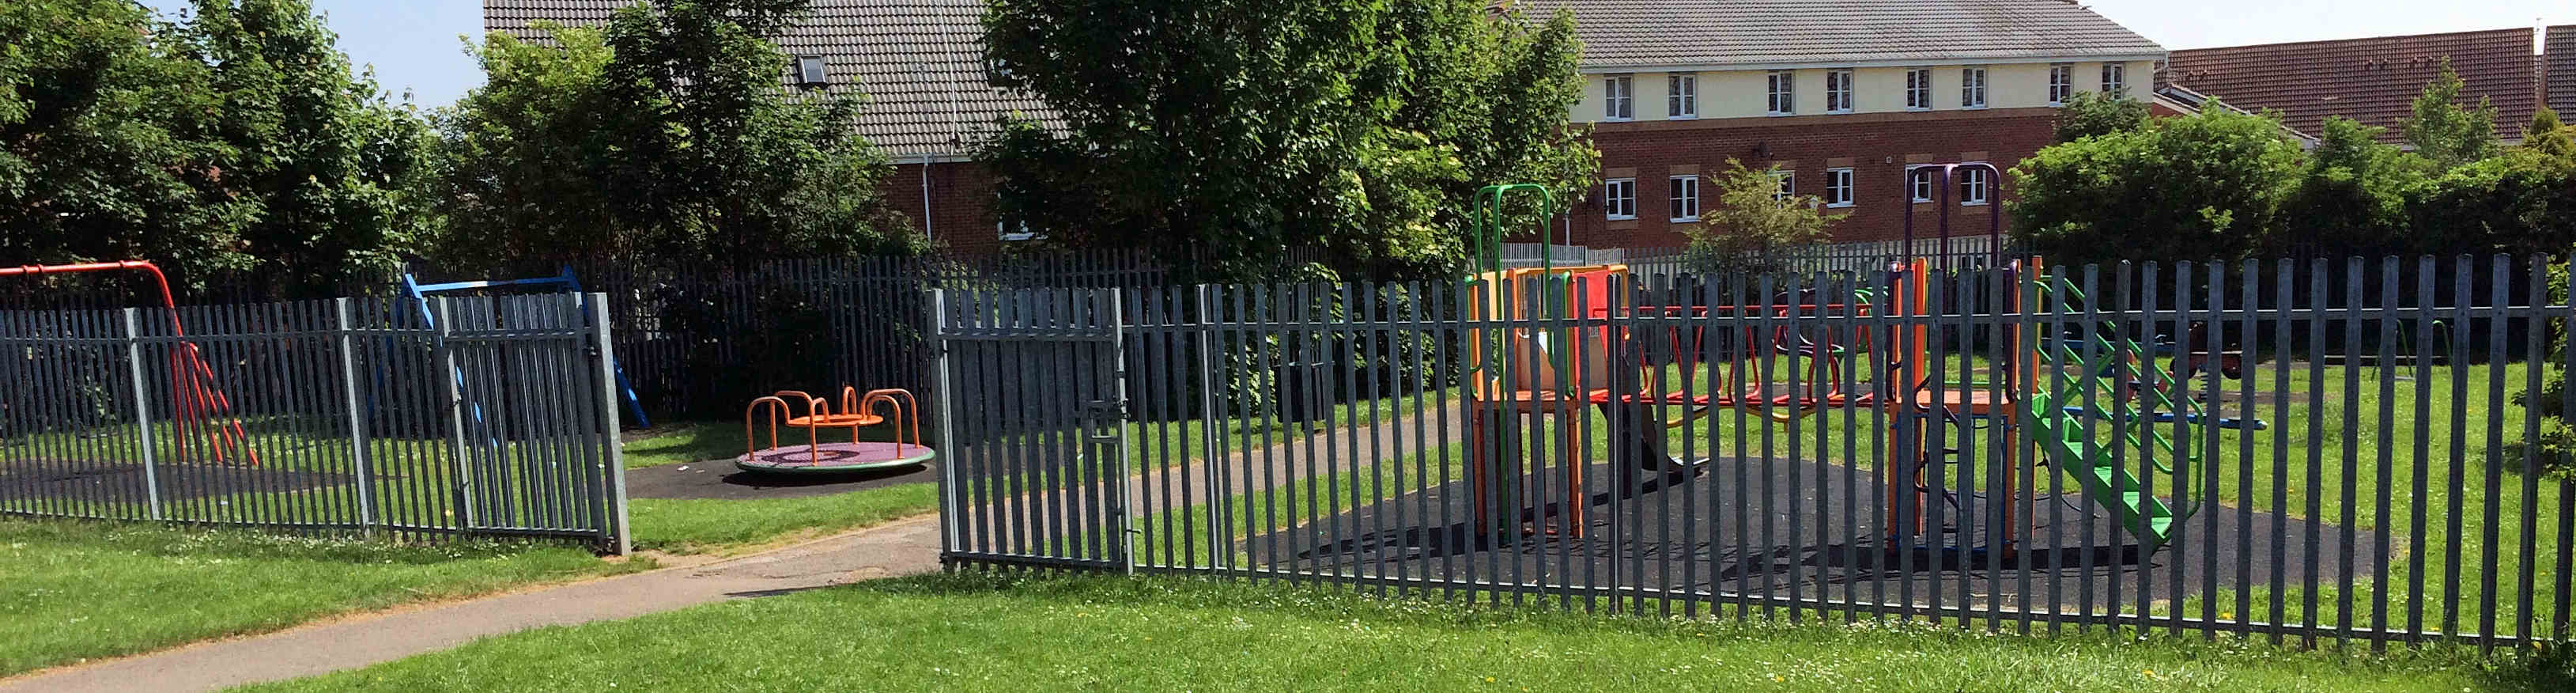 Tedder Rd park playground 4 noon 6th June 2016